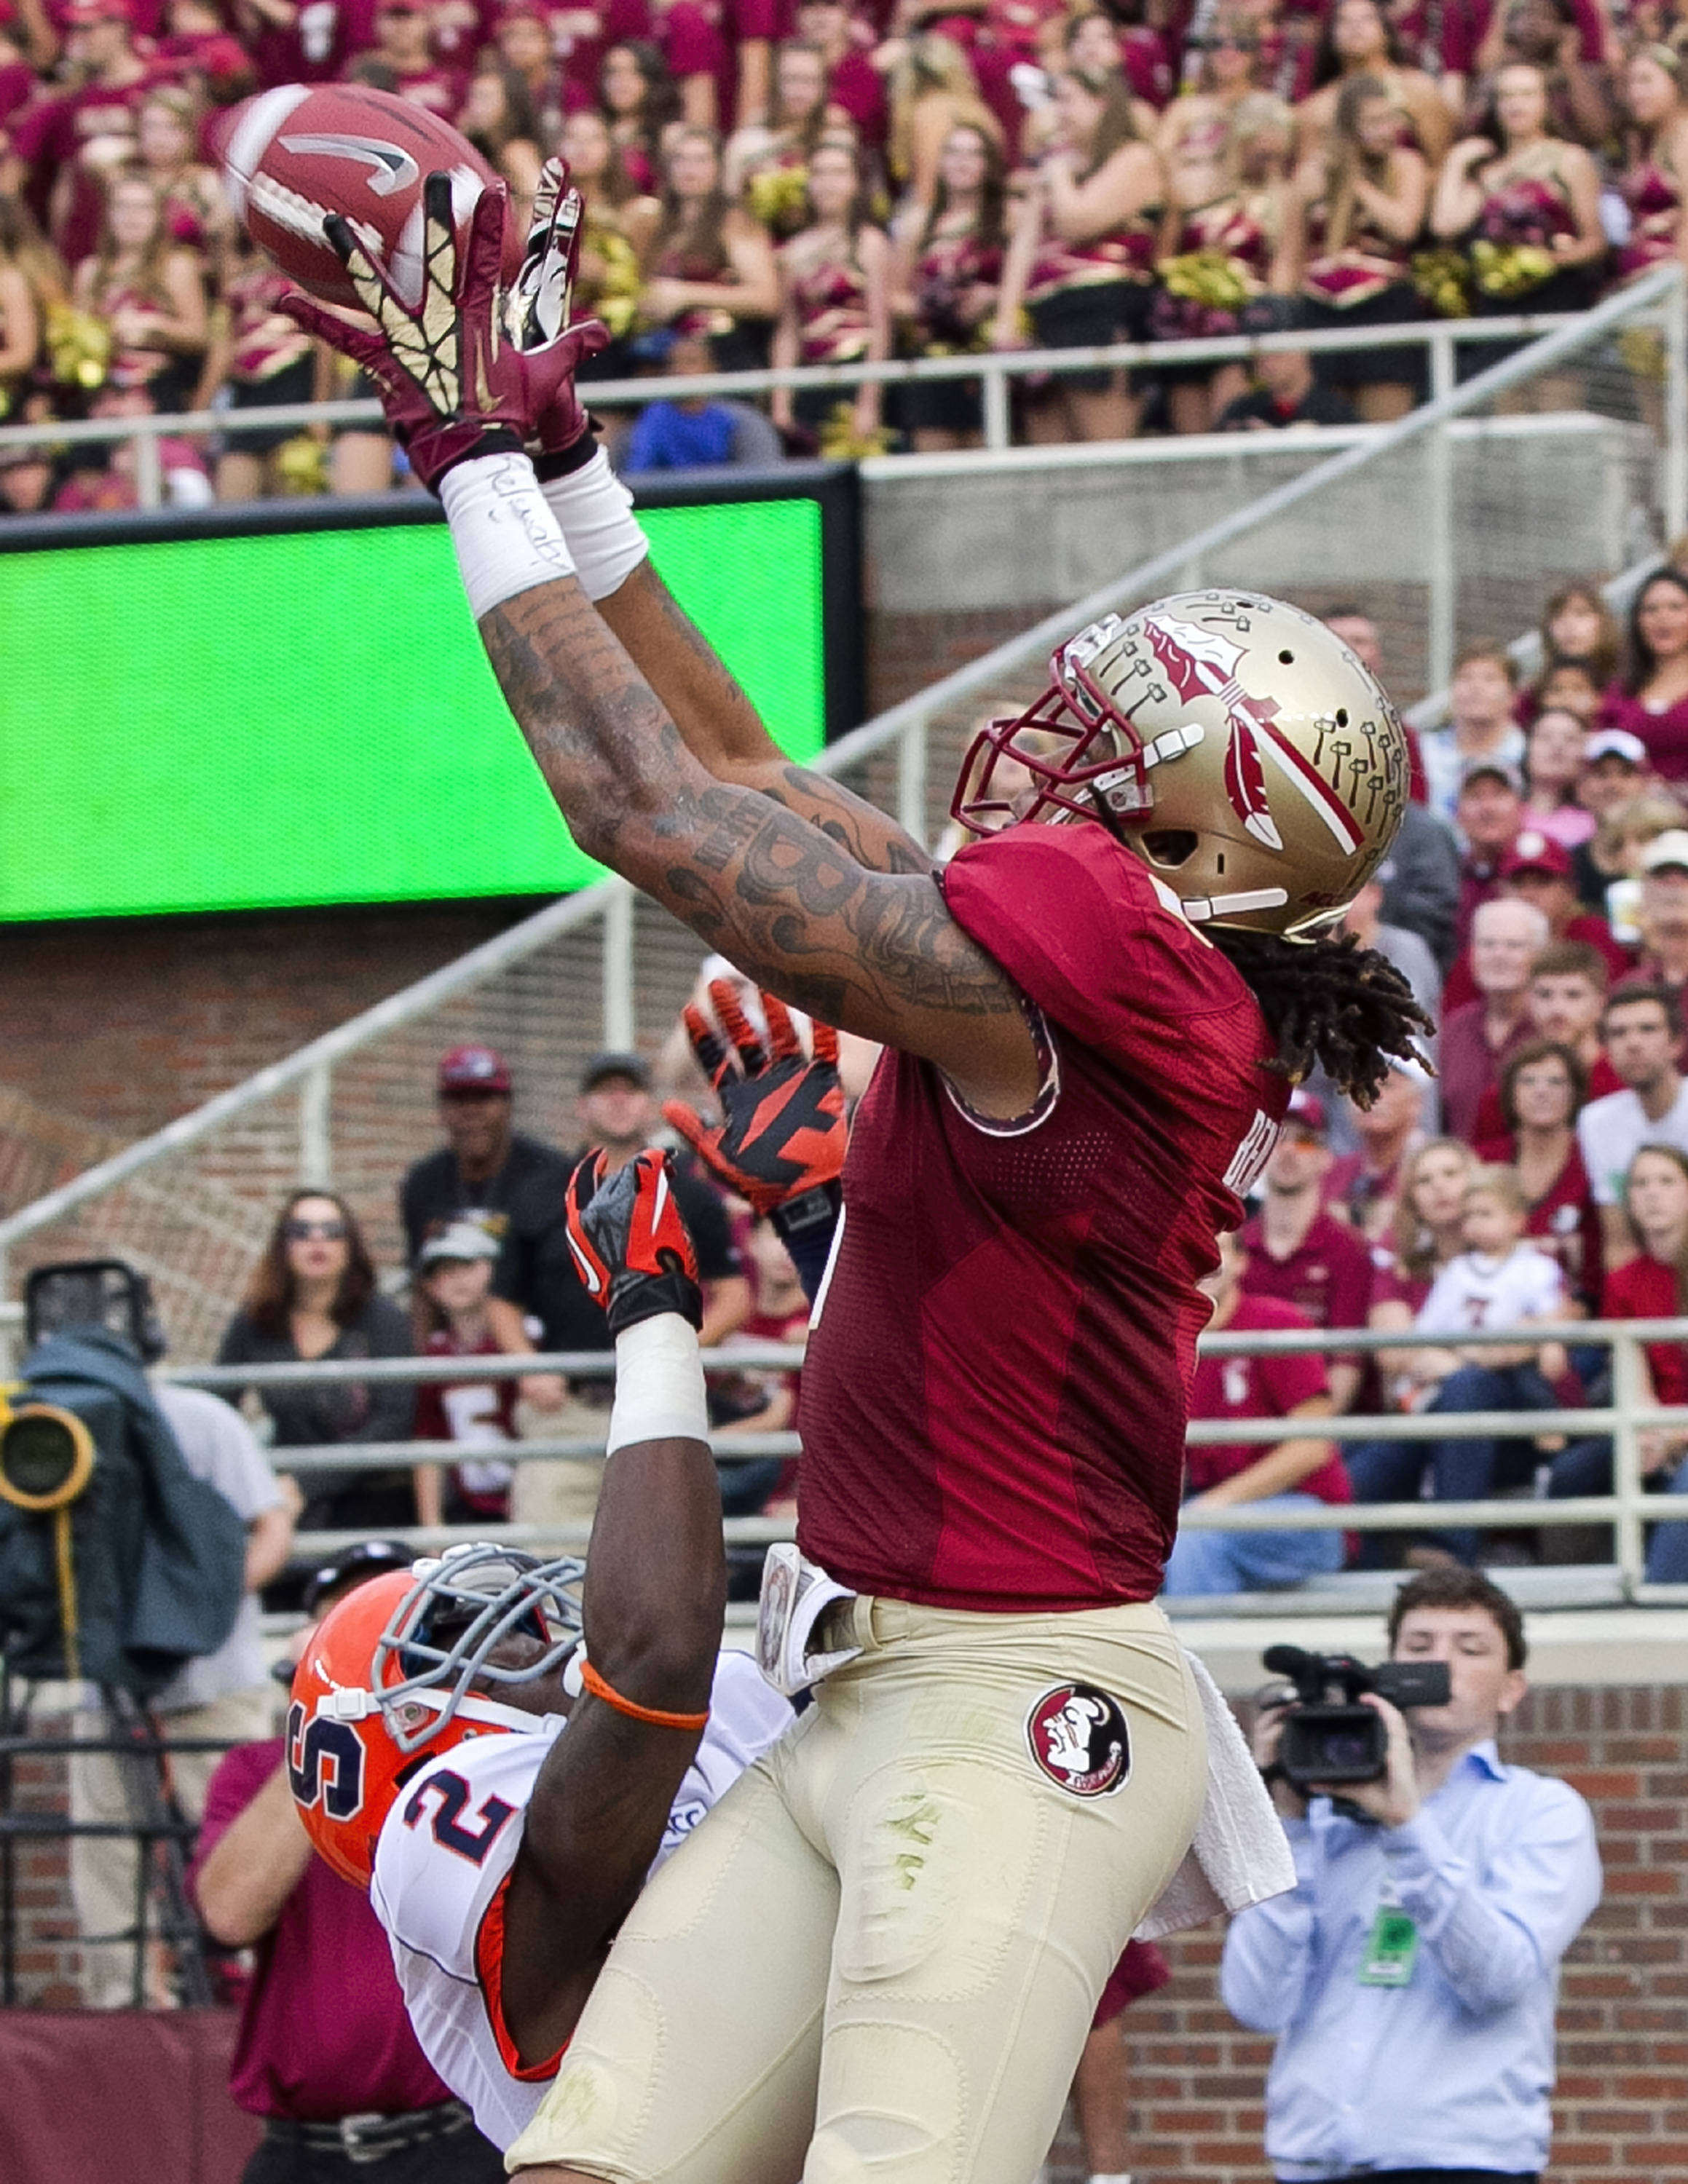 Kelvin Benjamin (1) with a touchdown catch, FSU vs Syracuse, 11-16-13, (Photo by Steve Musco)